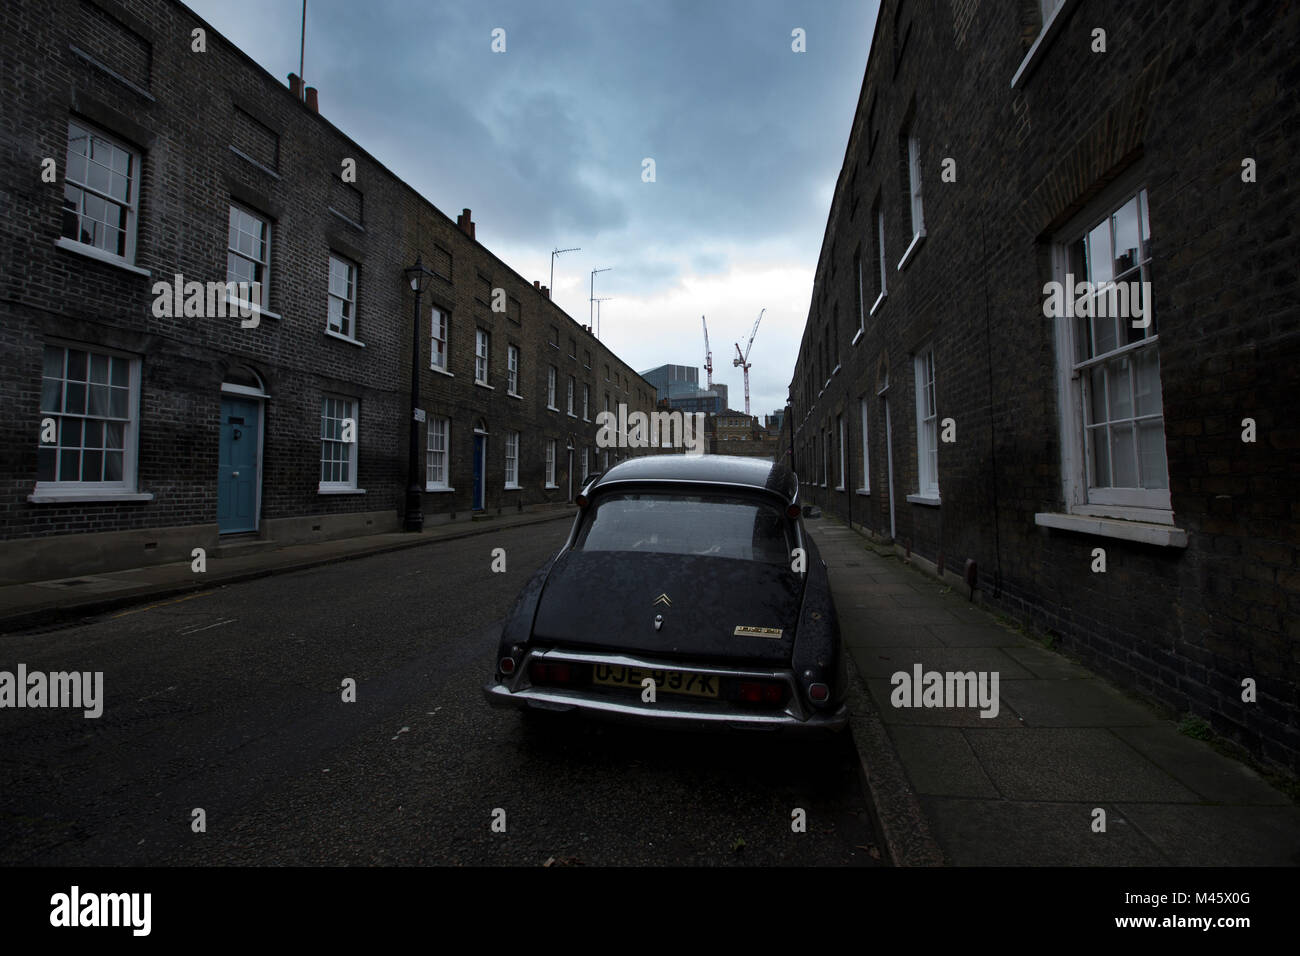 Roupell Street, part of the Lambeth Estate's Conservation Area near Waterloo, South East London, SE, England United - Stock Image